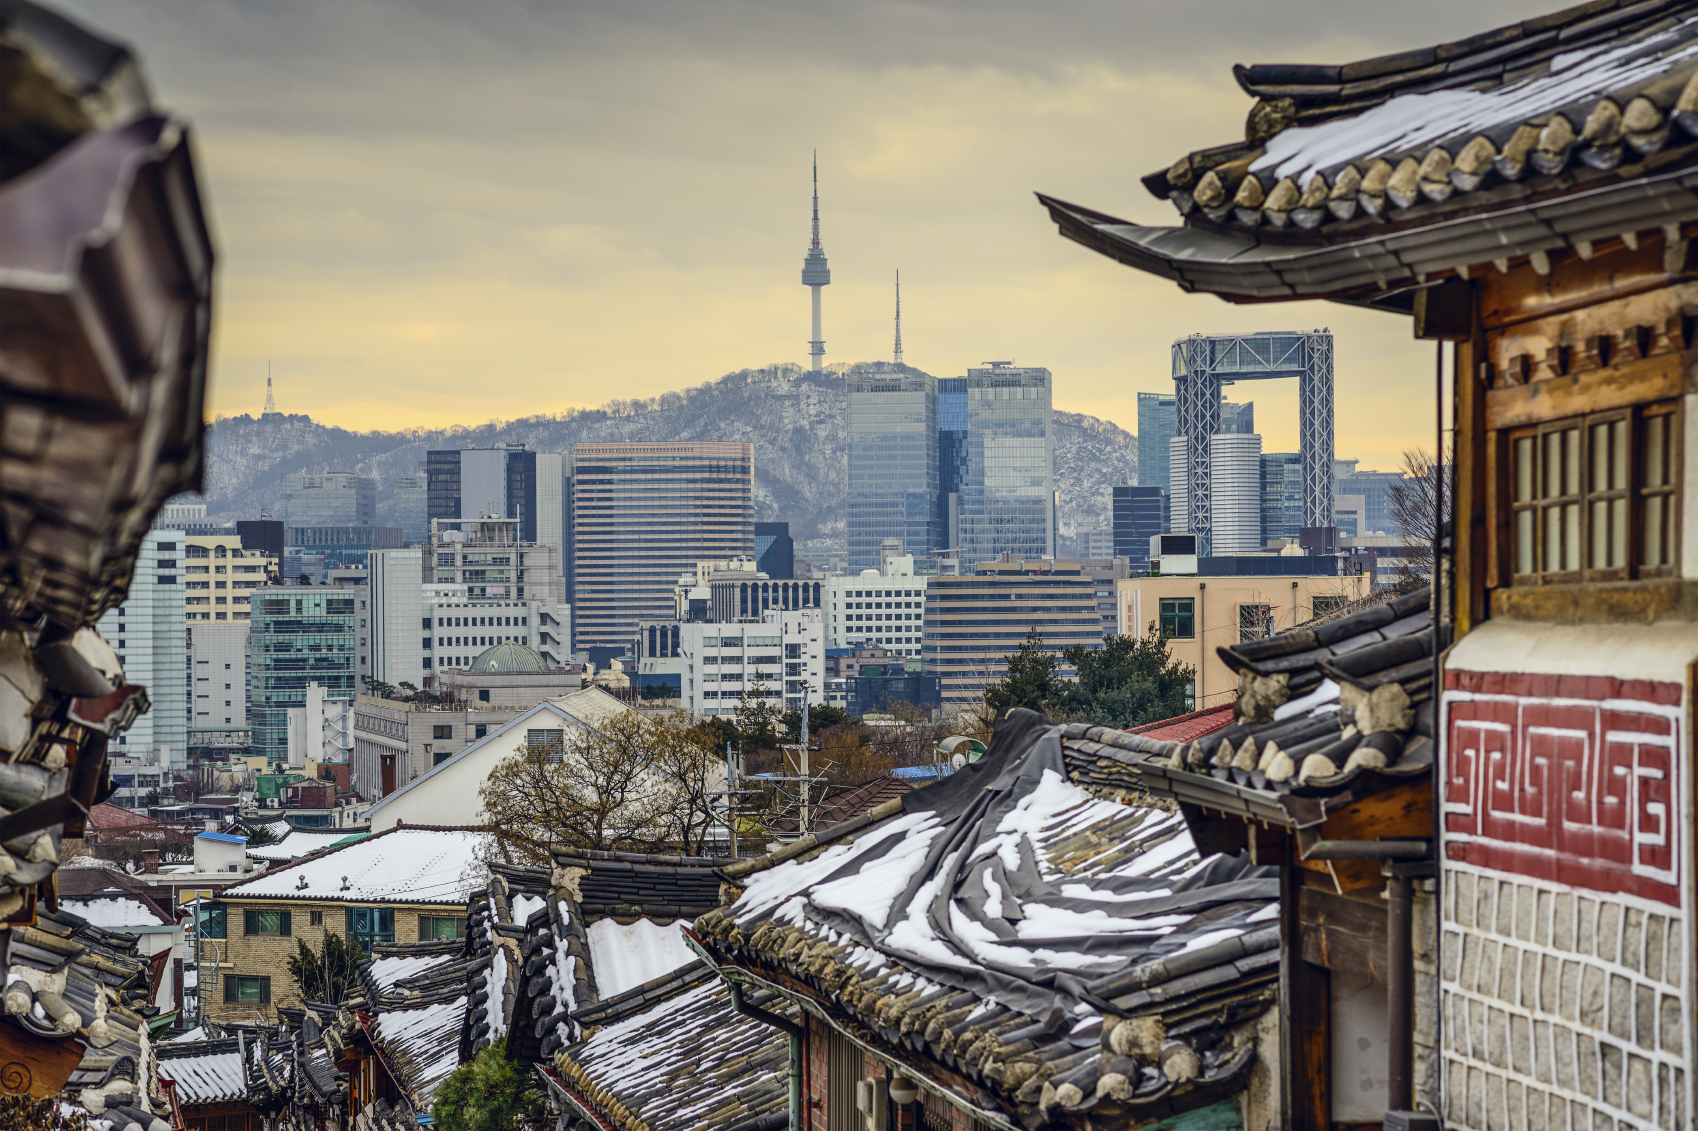 Seoul - South Korea Historic District and Skyline